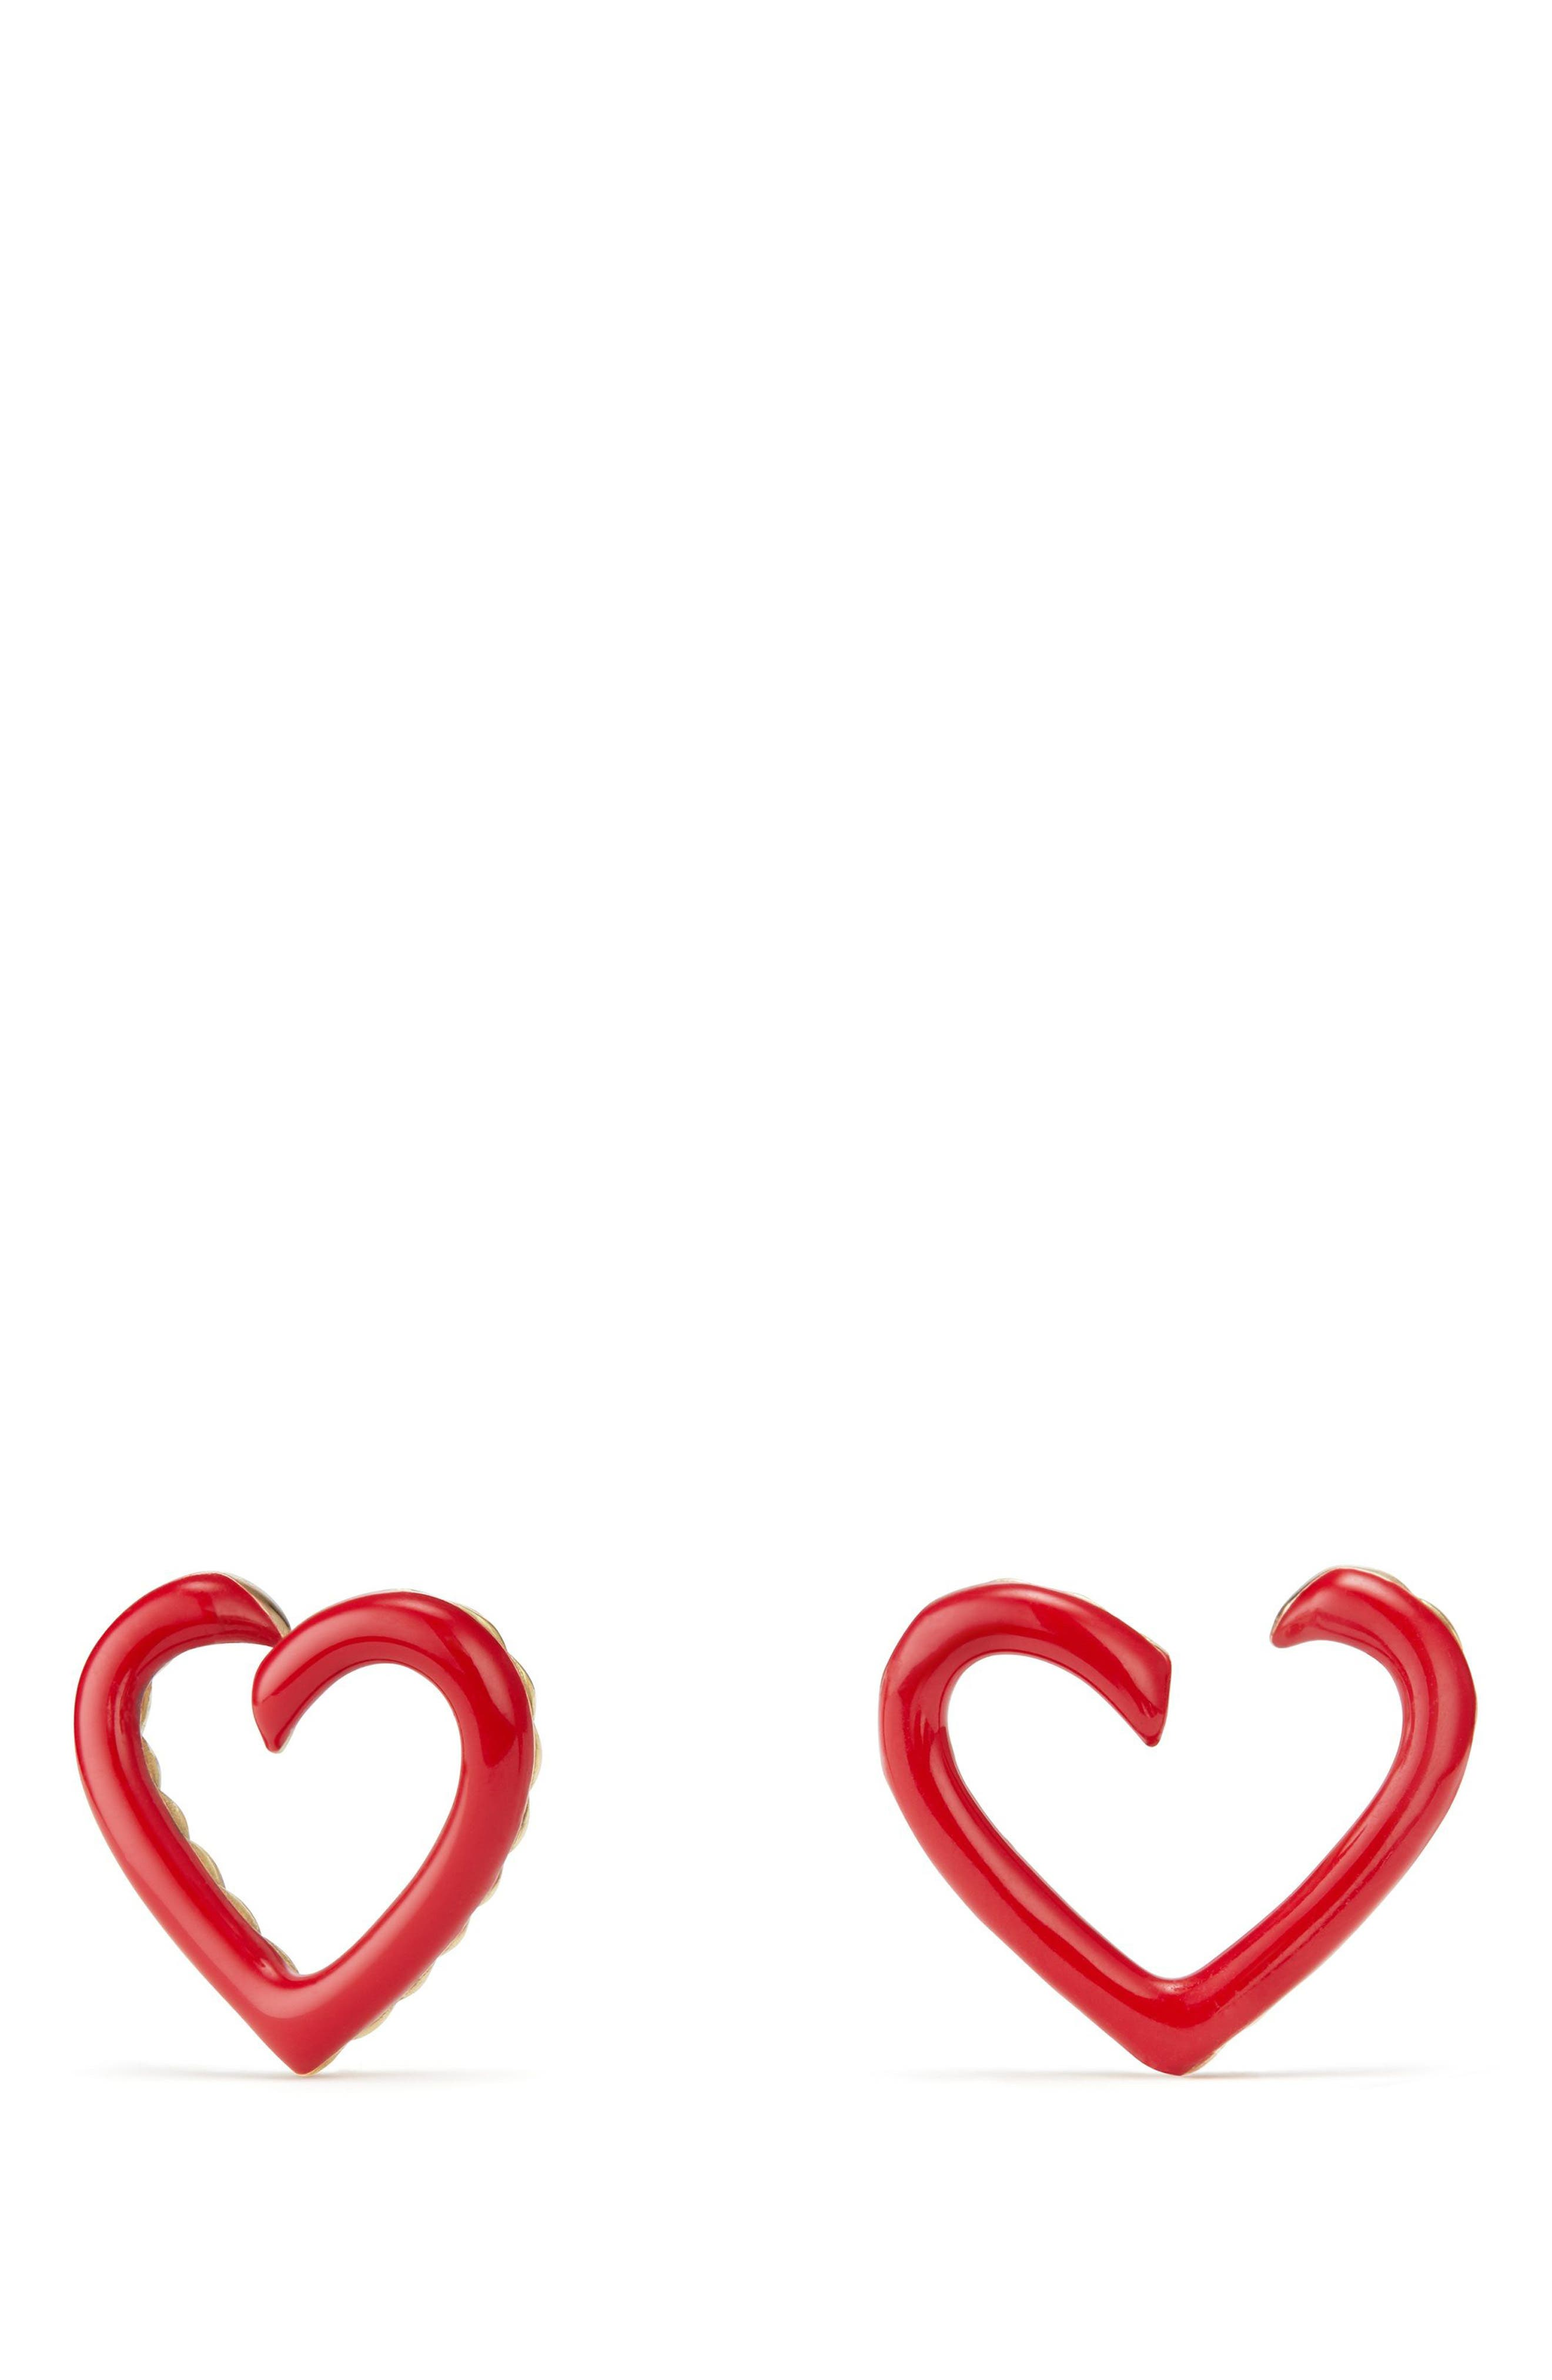 Main Image - David Yurman Cable Heart Earrings in Red Enamel and 18K Gold